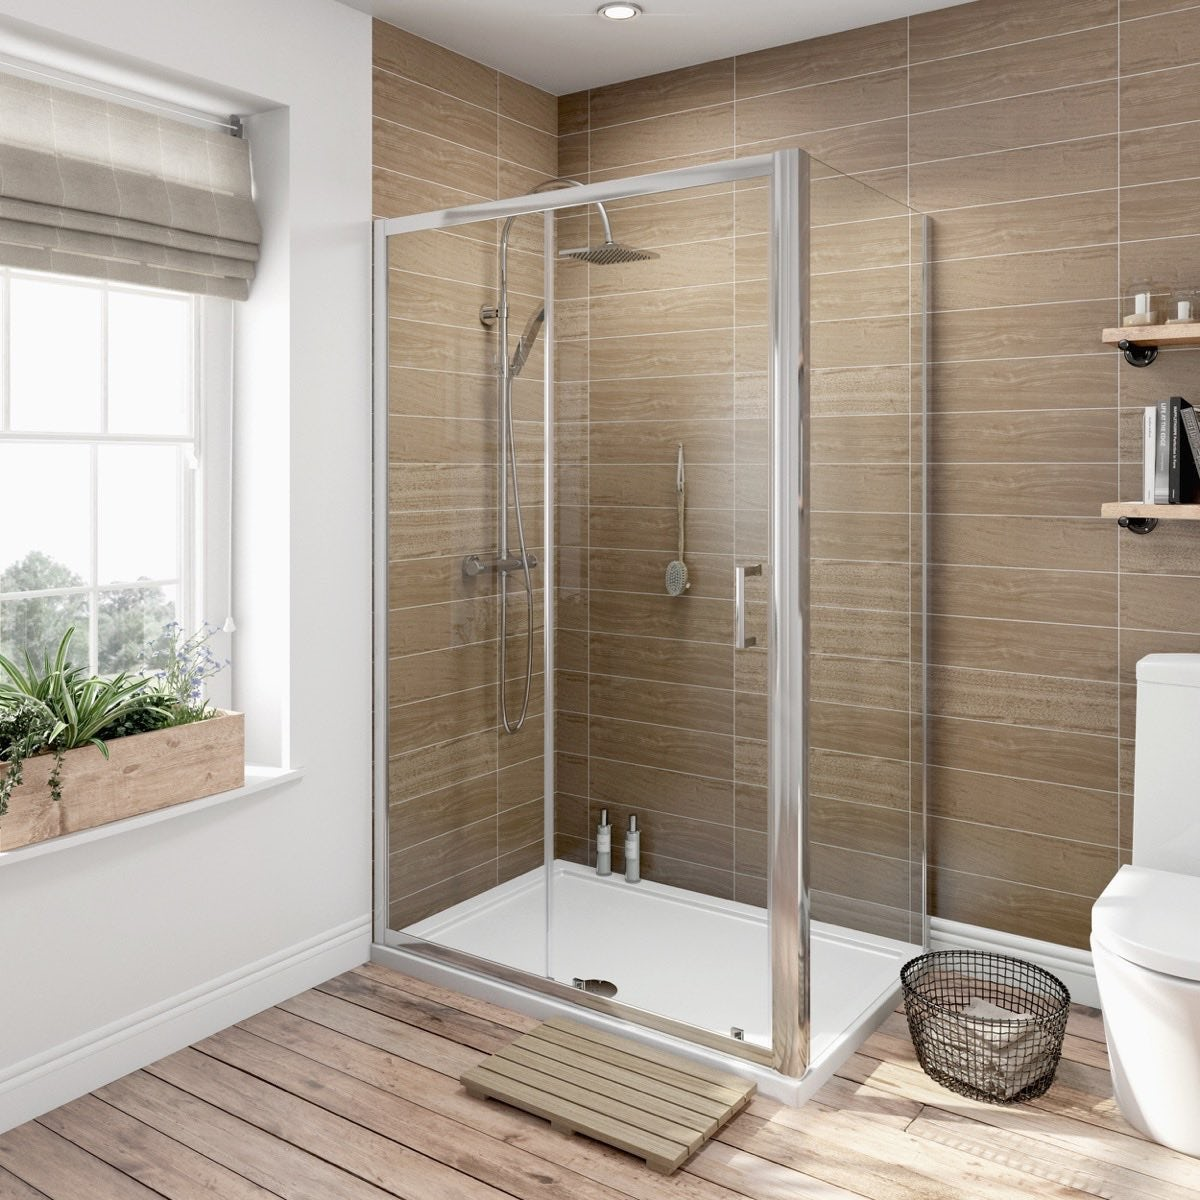 Orchard 6mm sliding door shower enclosure 1000 x 700 offer pack